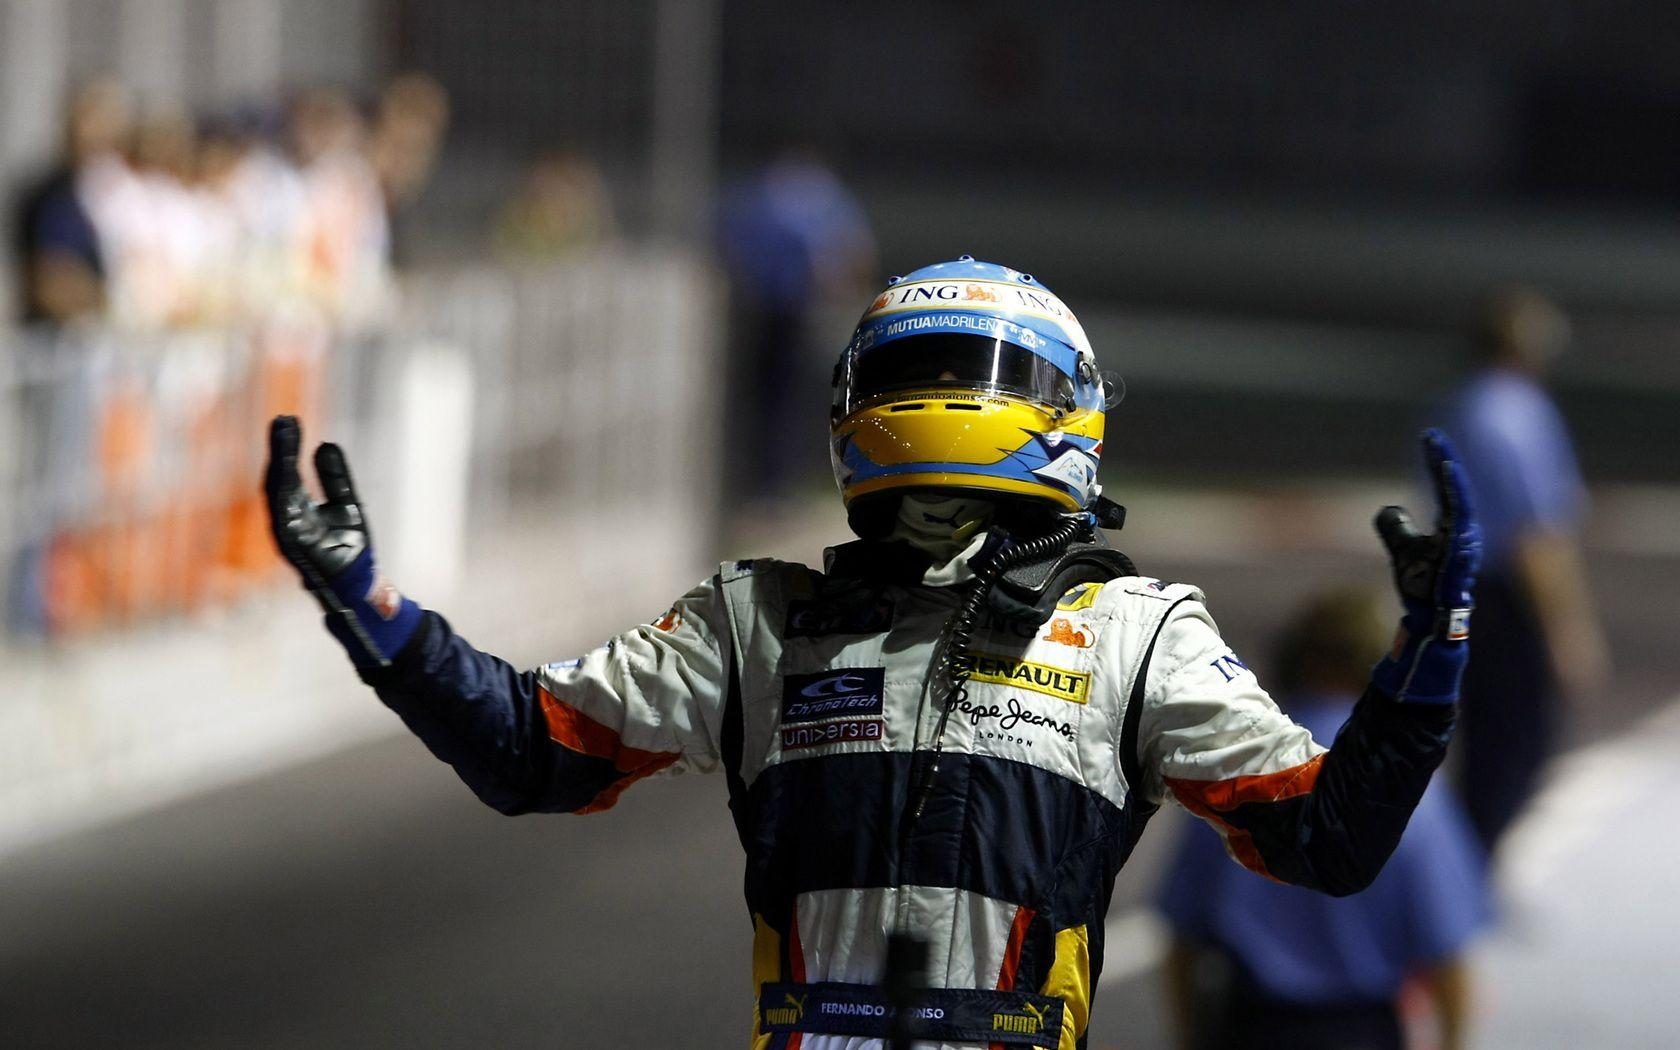 Fernando Alonso Wallpaper and Background Image | 1680x1050 | ID ...